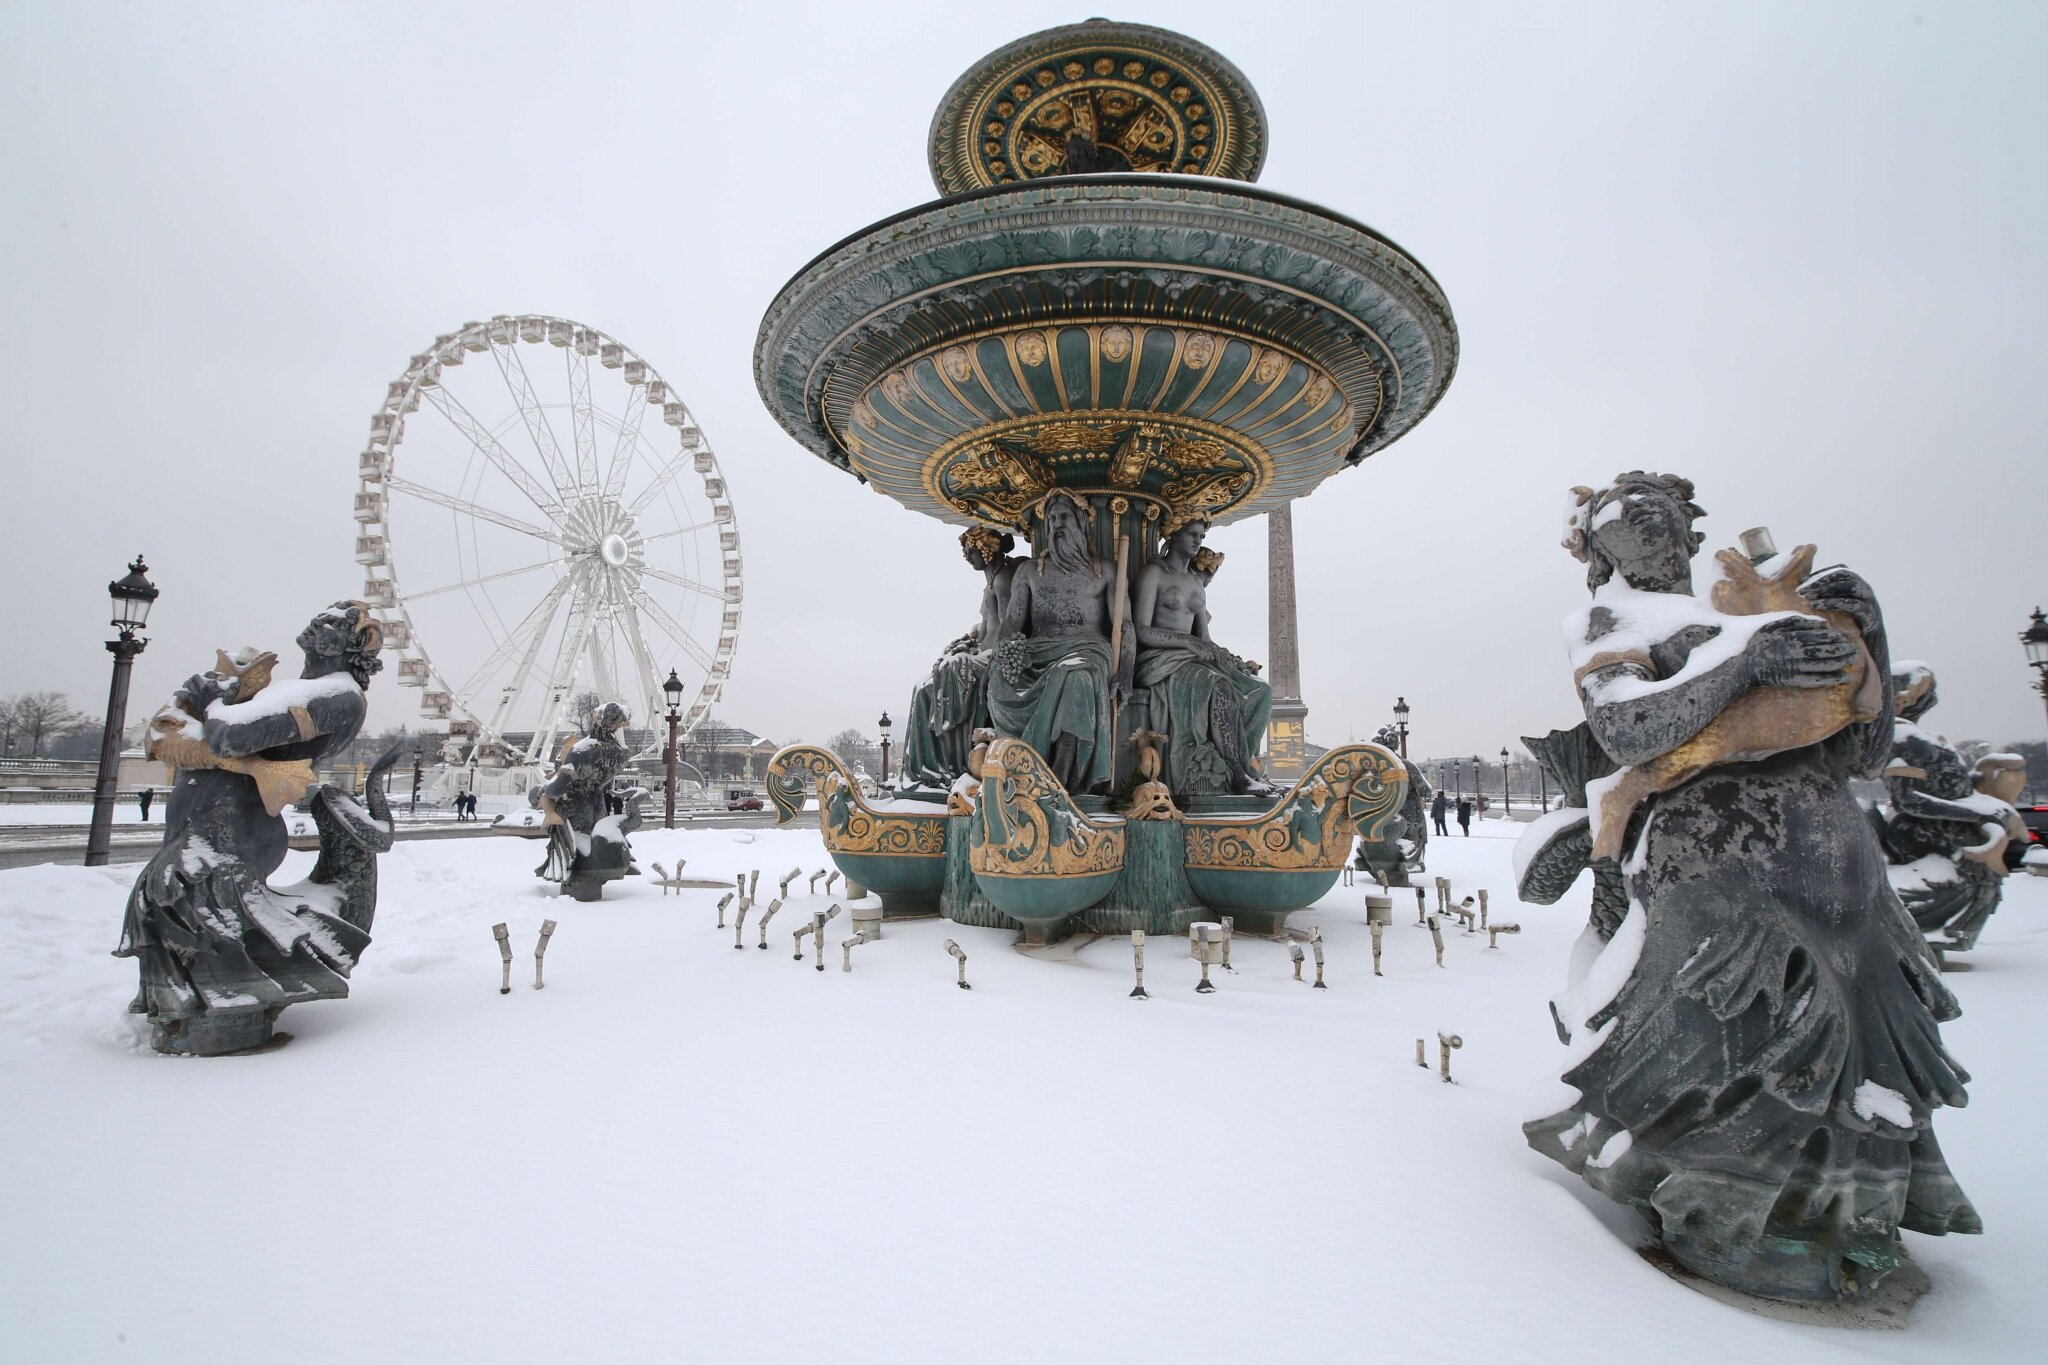 Paris sous la neige. © Photo Michel Stoupak. Sam 19.01.2013, 11:46.